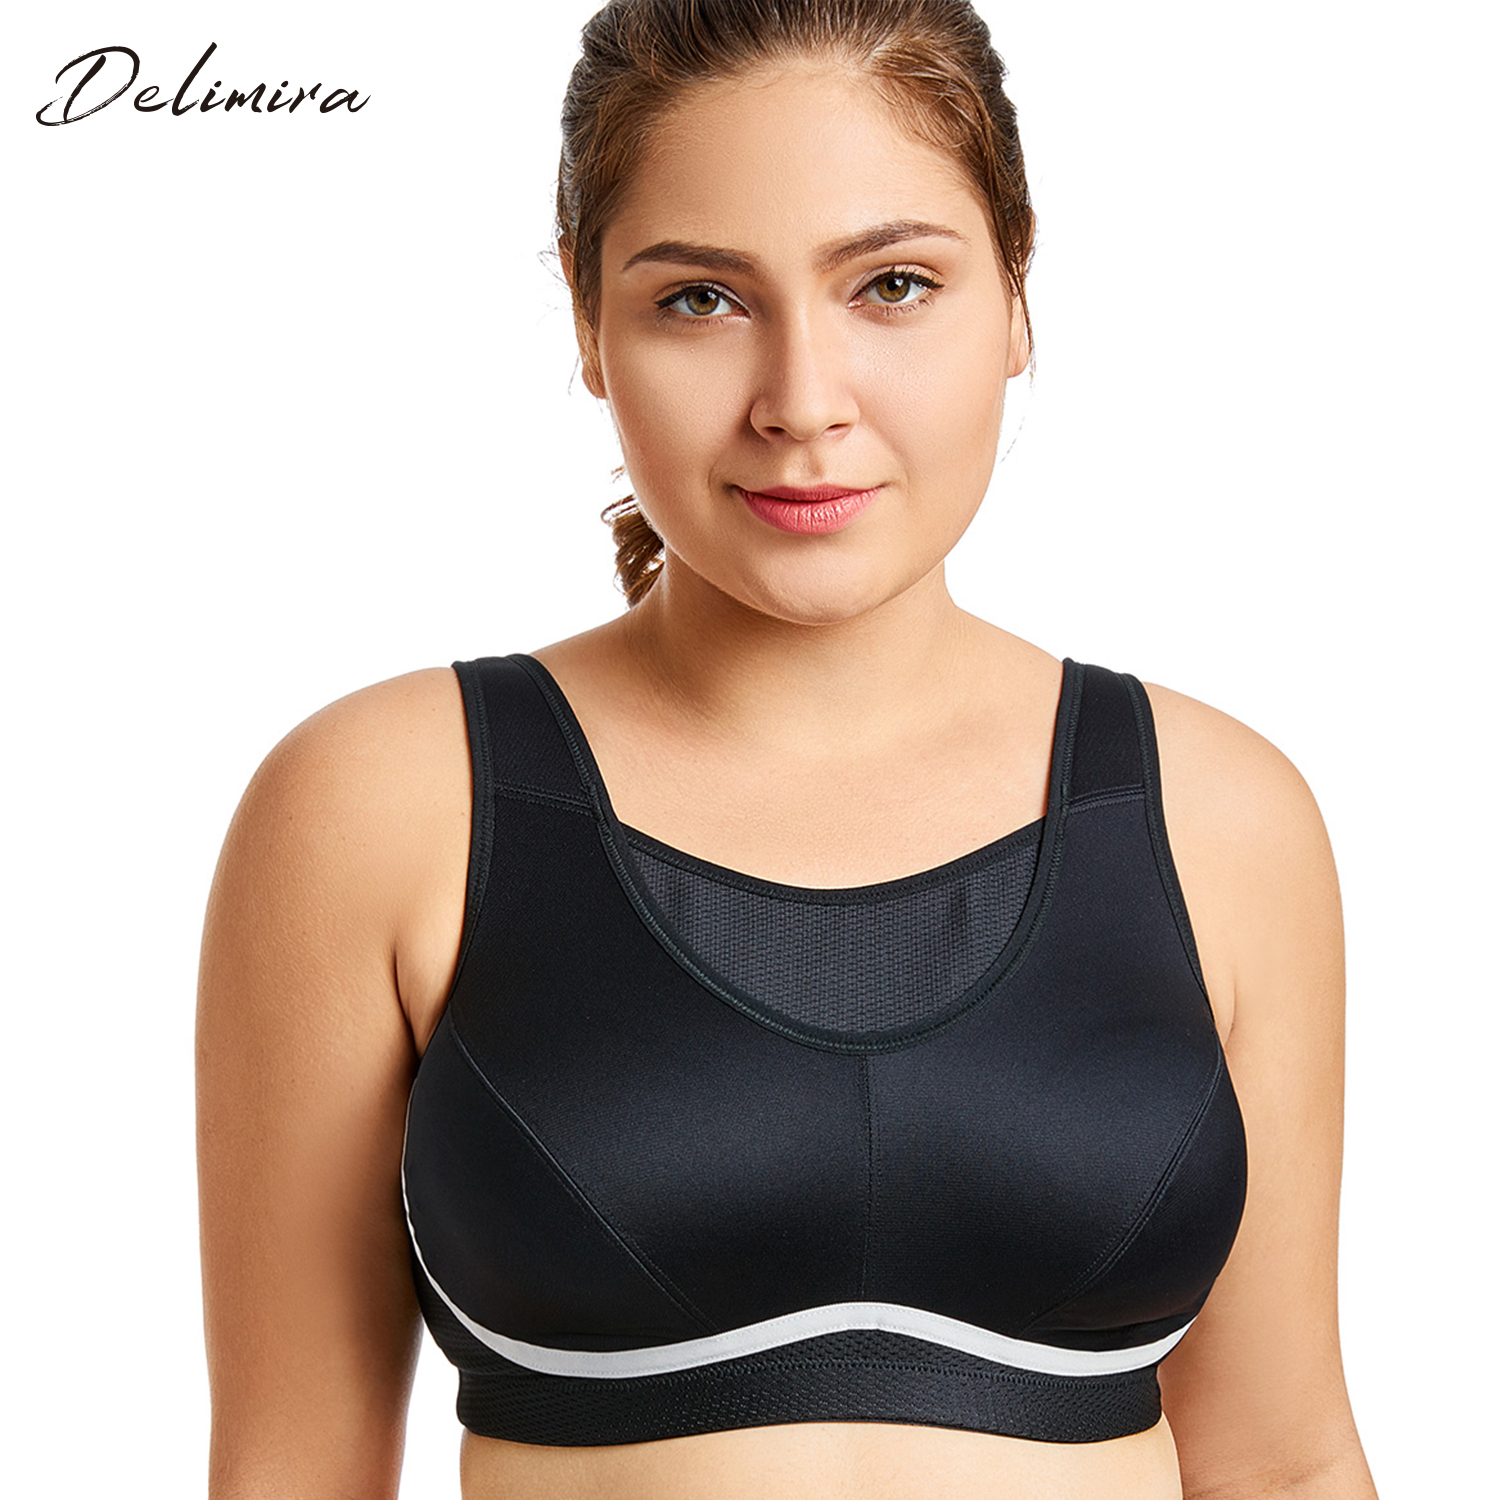 Women's Plus Size High Impact No Bounce Full Coverage Wire Free Exercise Bra-in Bras from Underwear & Sleepwears